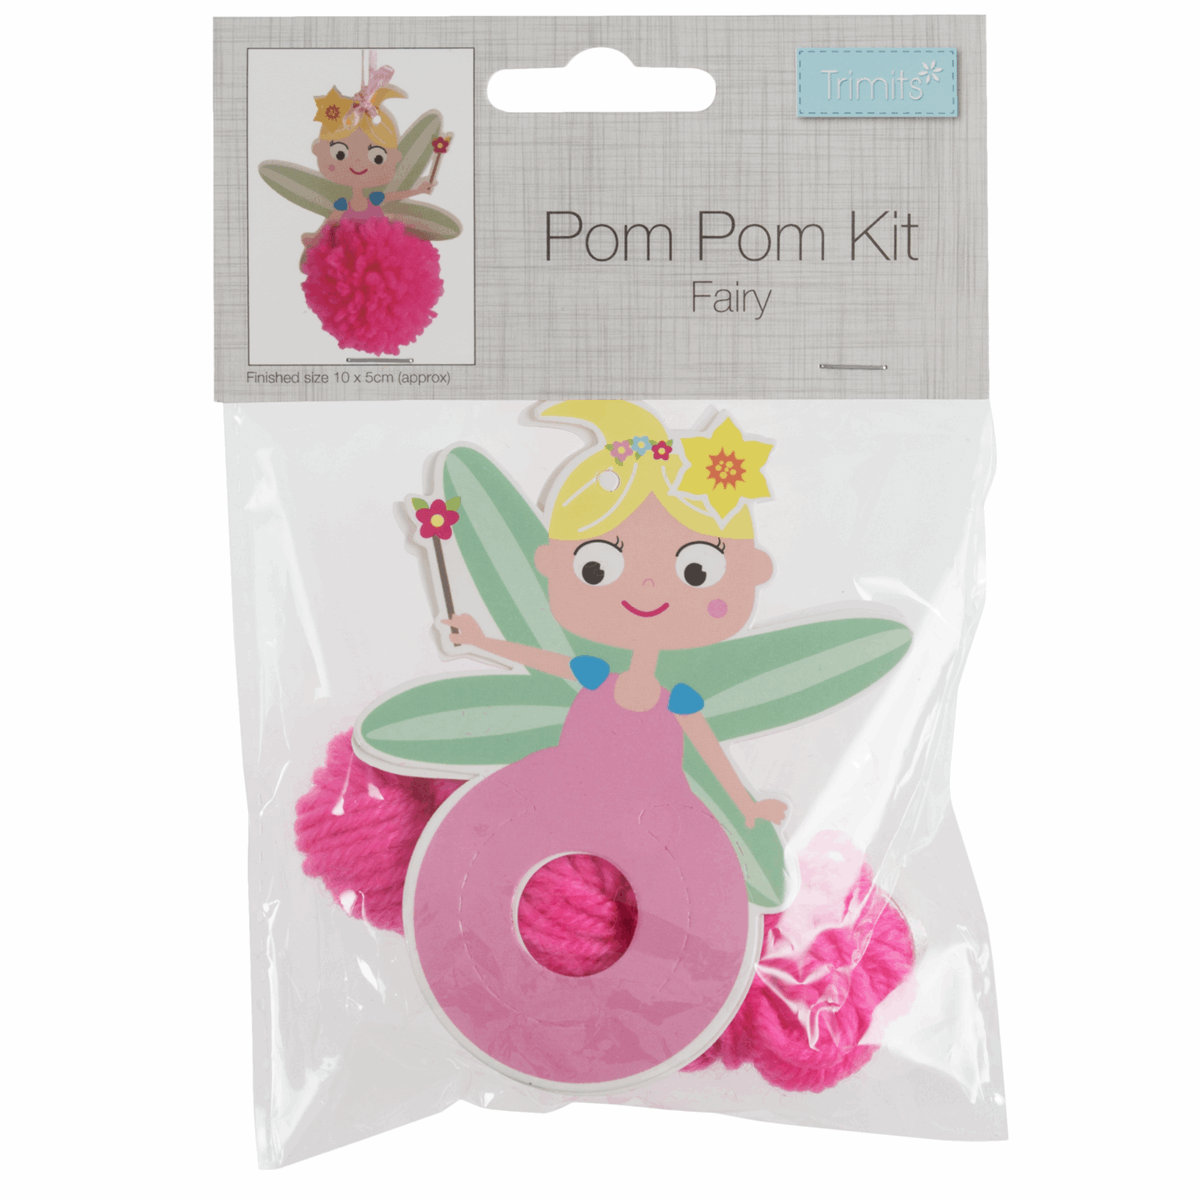 Picture of Pom Pom Decoration Kit: Fairy: Pack of 4